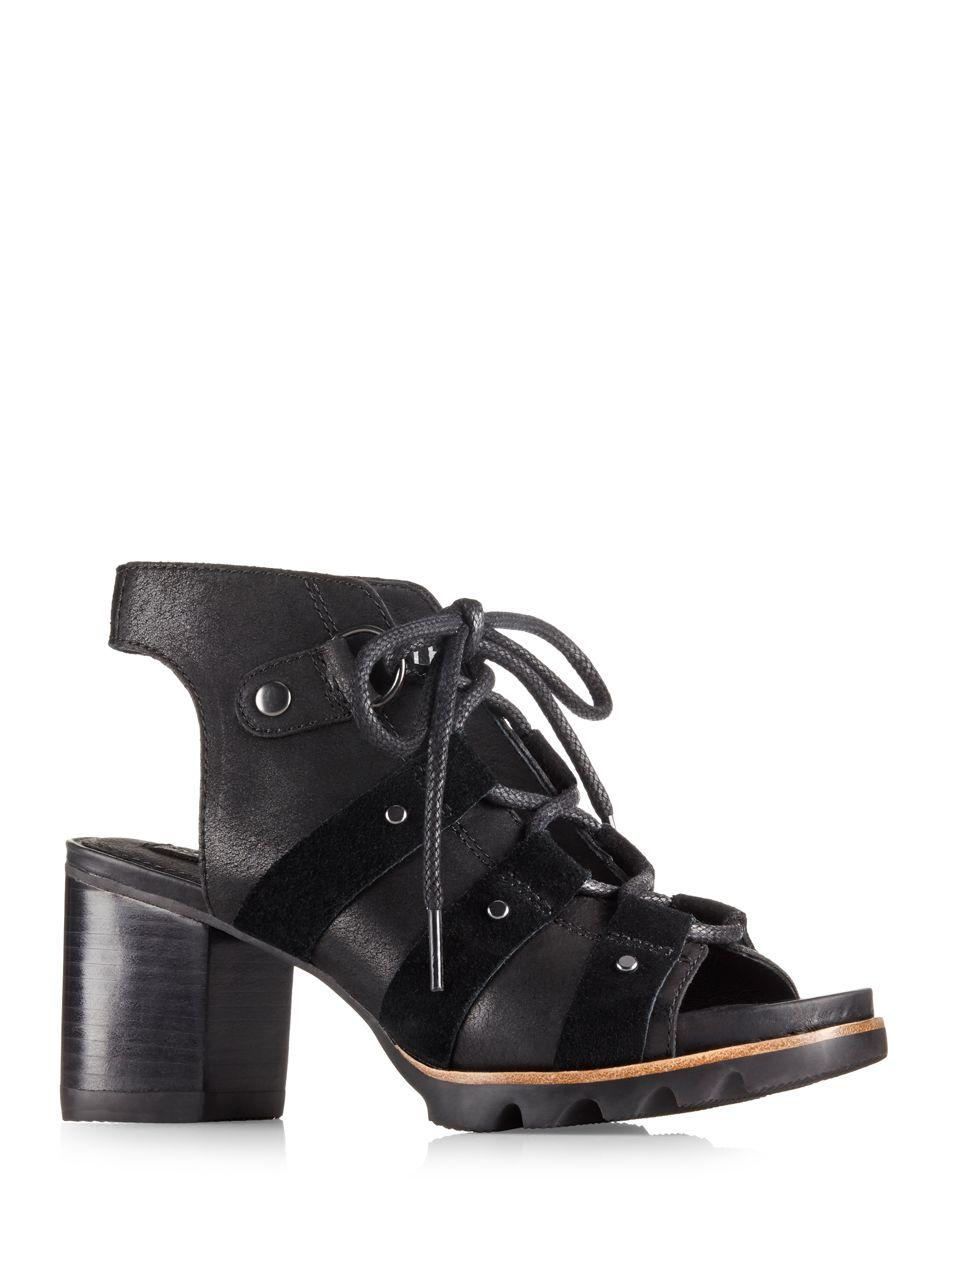 Lyst Sorel Addington Lace Up Sandals In Black